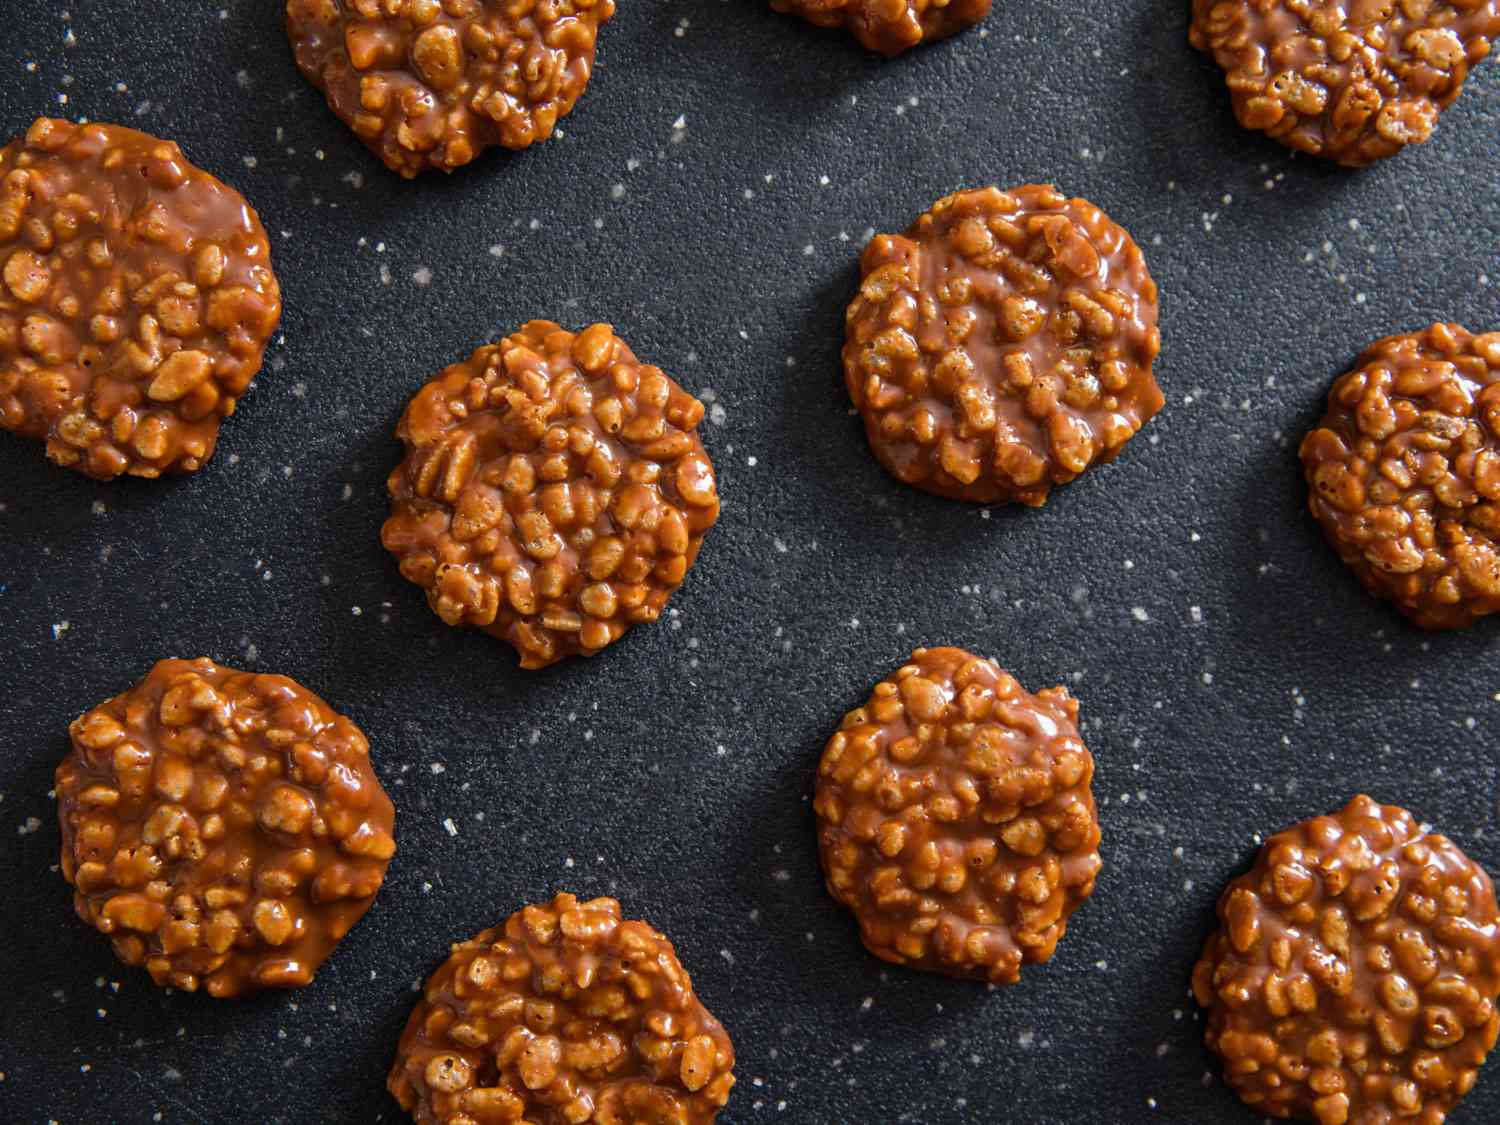 Star crunch no bake cookies on a black surface.